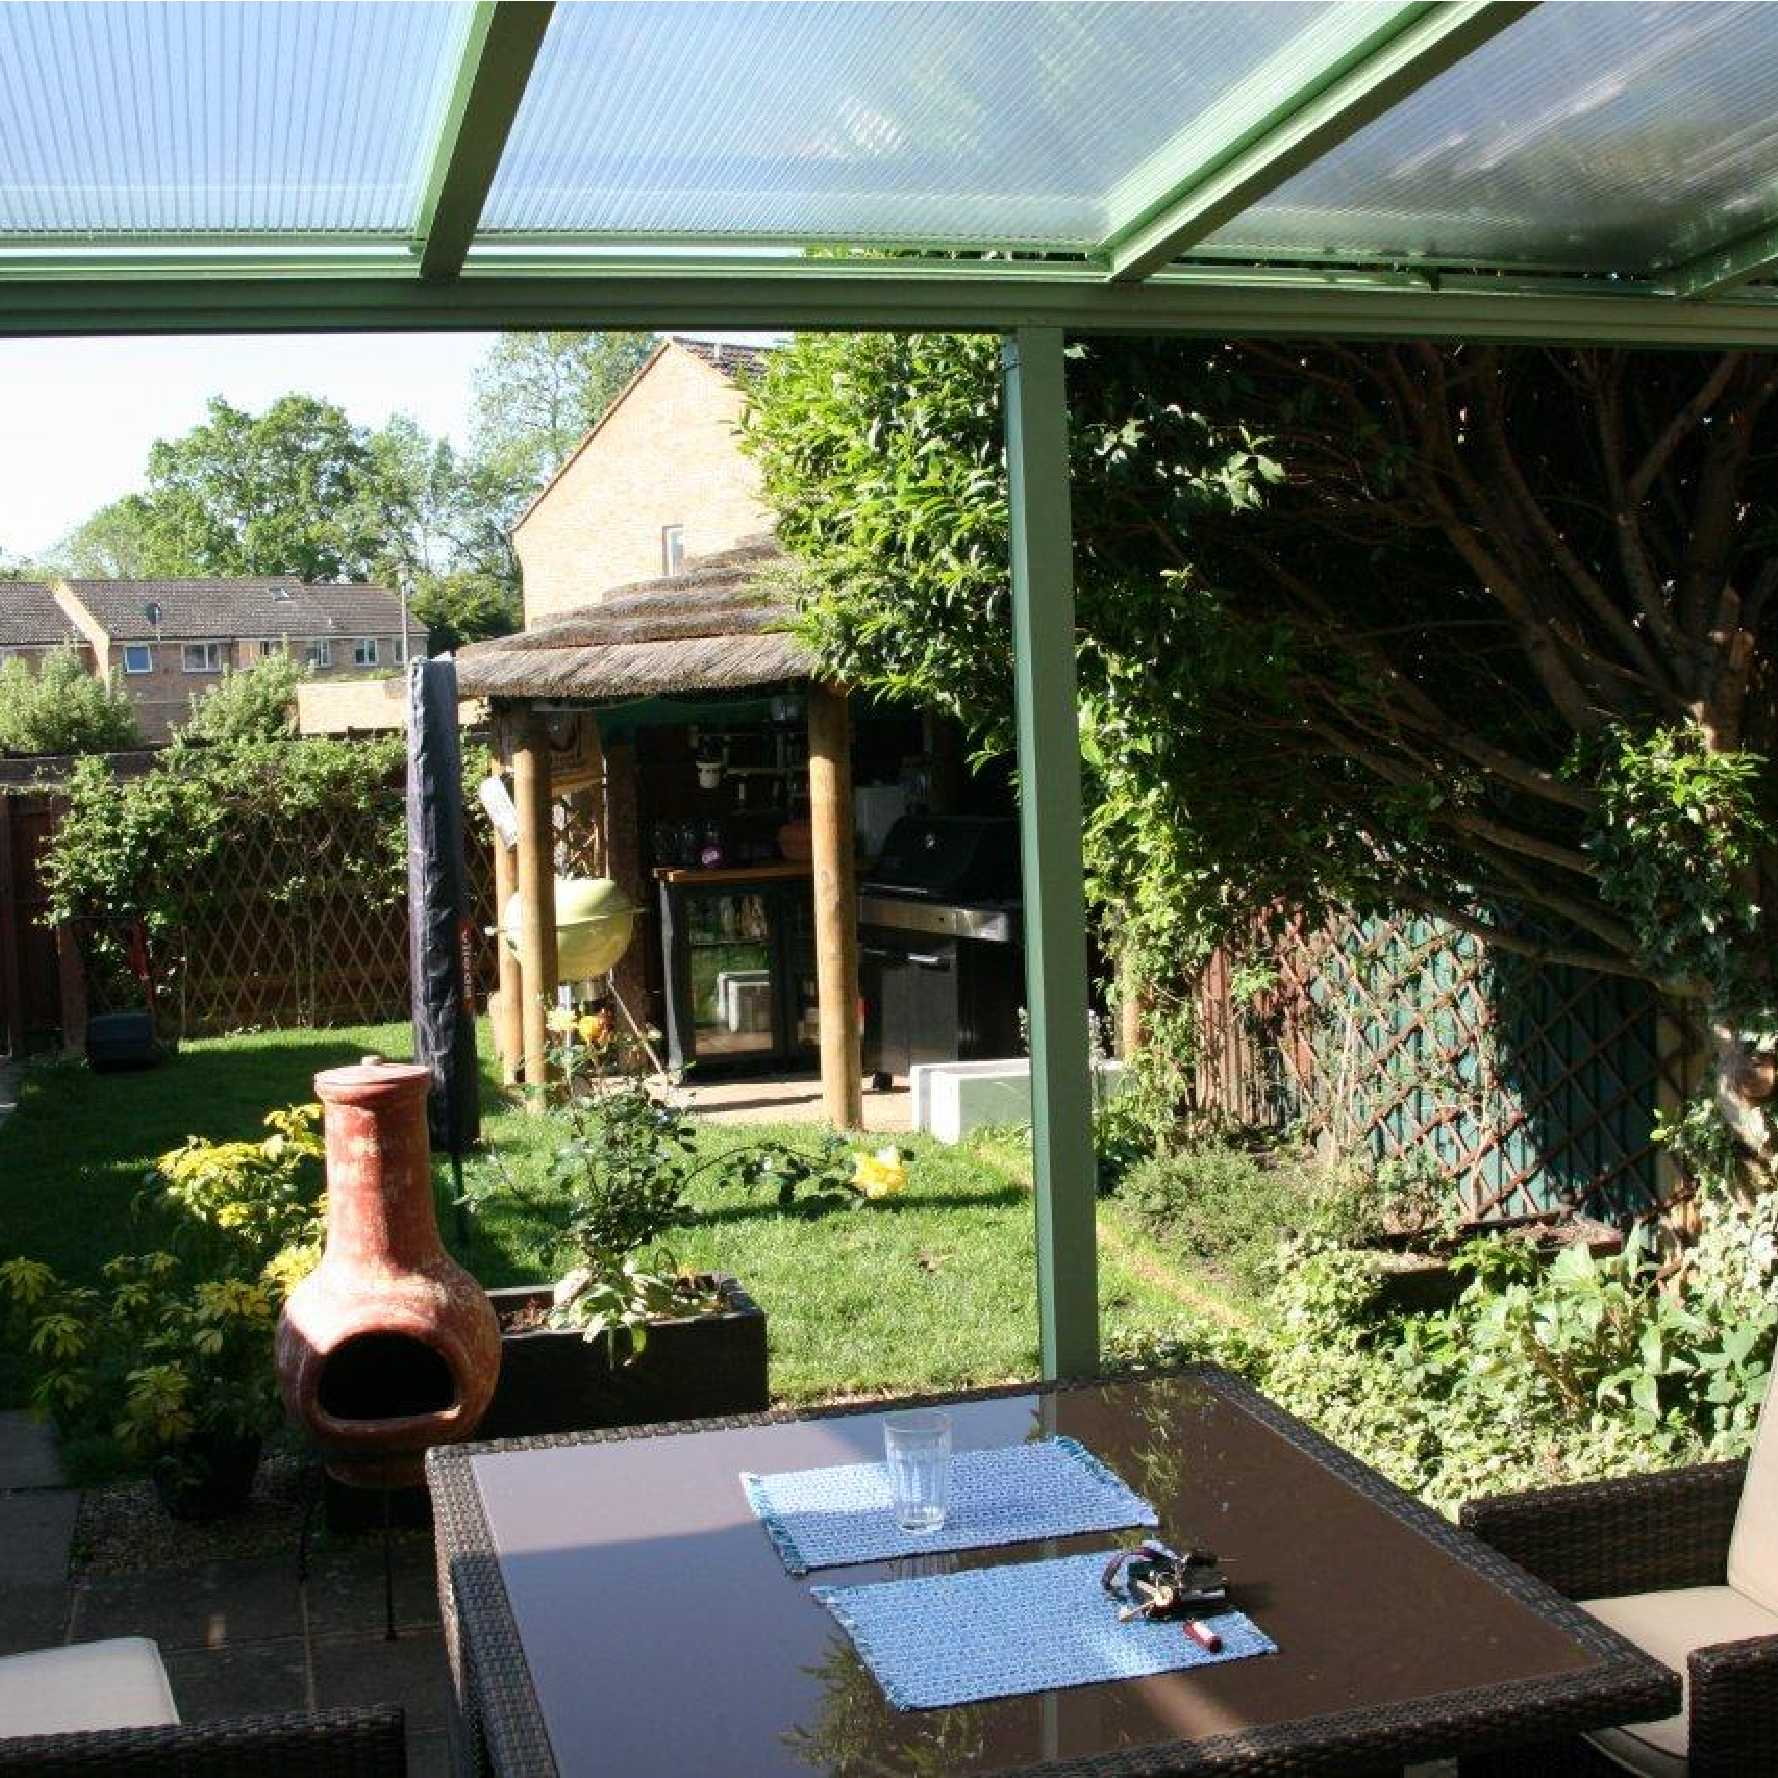 Affordable Omega Smart Lean-To Canopy with 16mm Polycarbonate Glazing - 12.0m (W) x 1.5m (P), (5) Supporting Posts